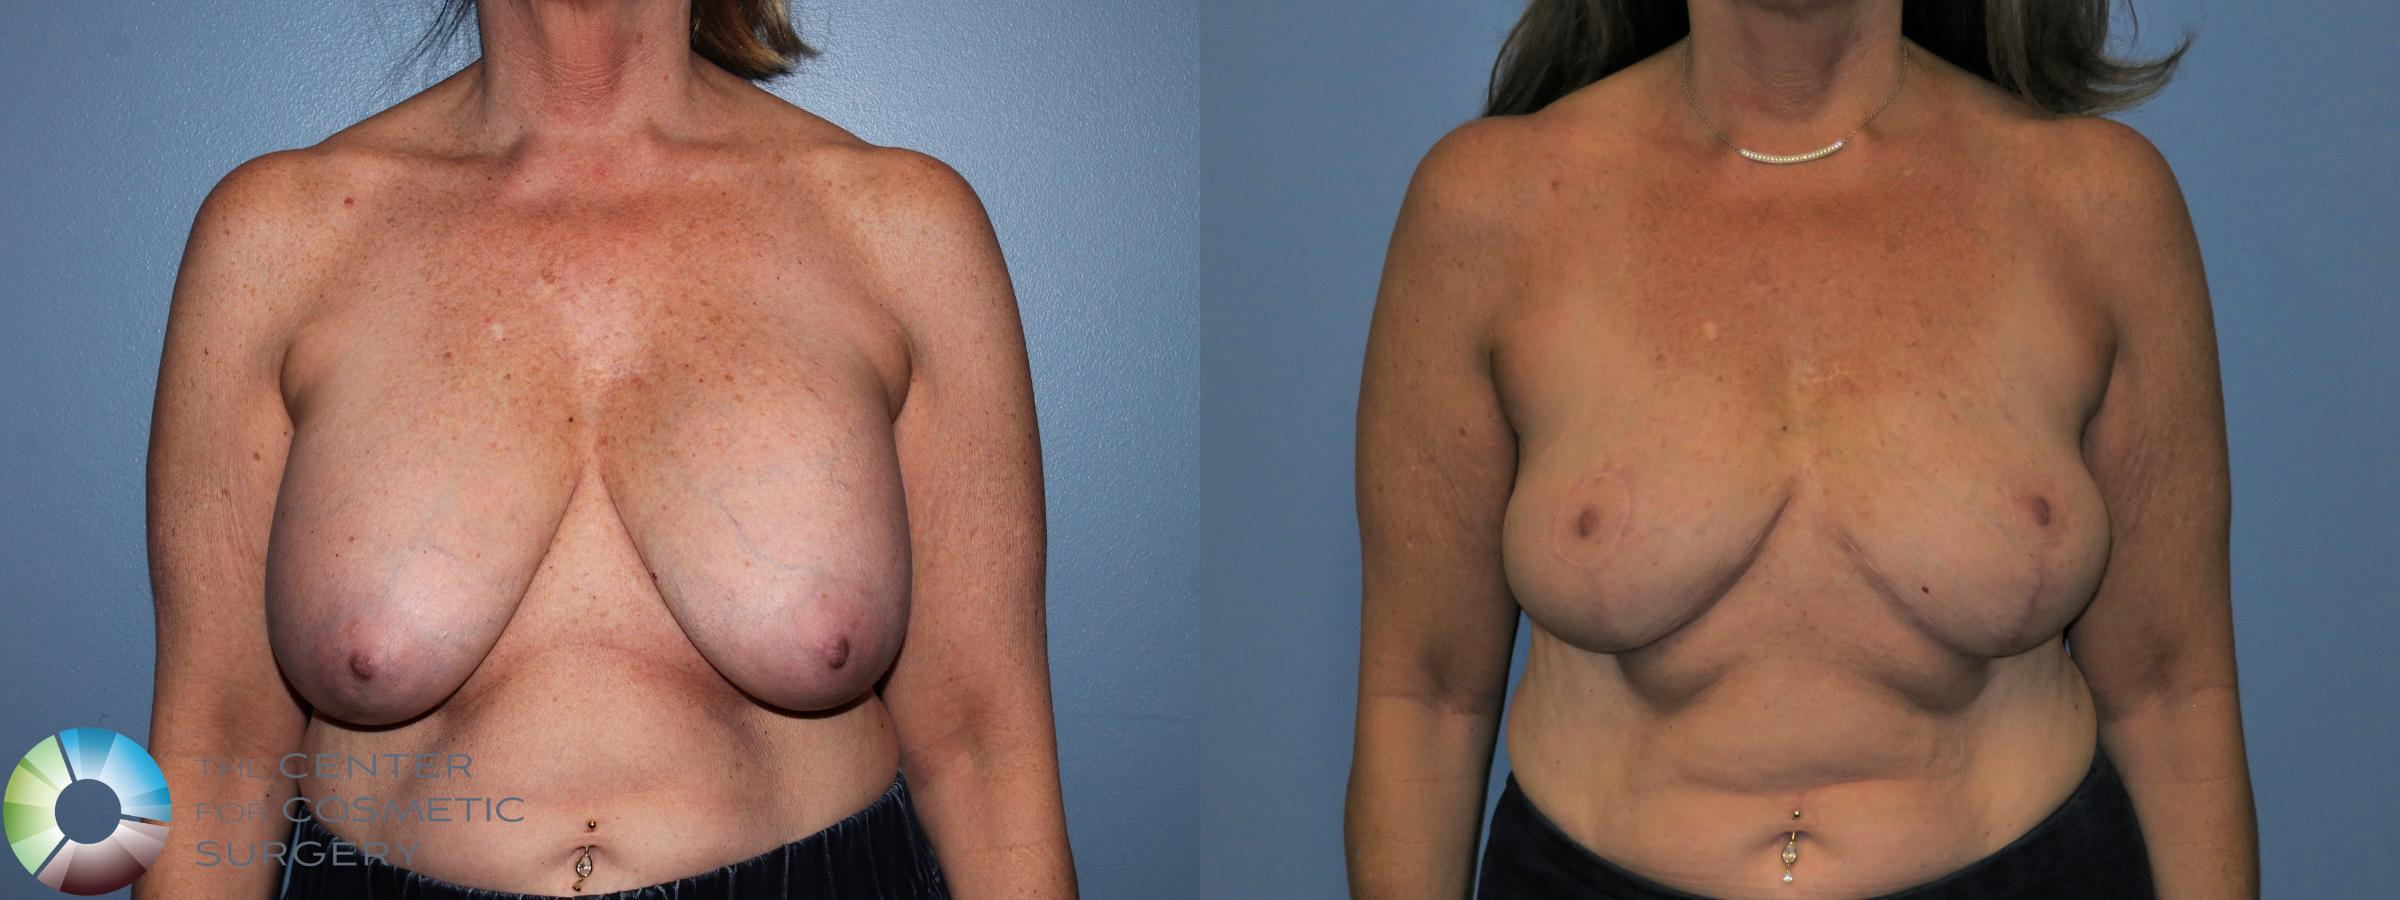 Breast Implant Removal with Capsulectomy and Breast Lift